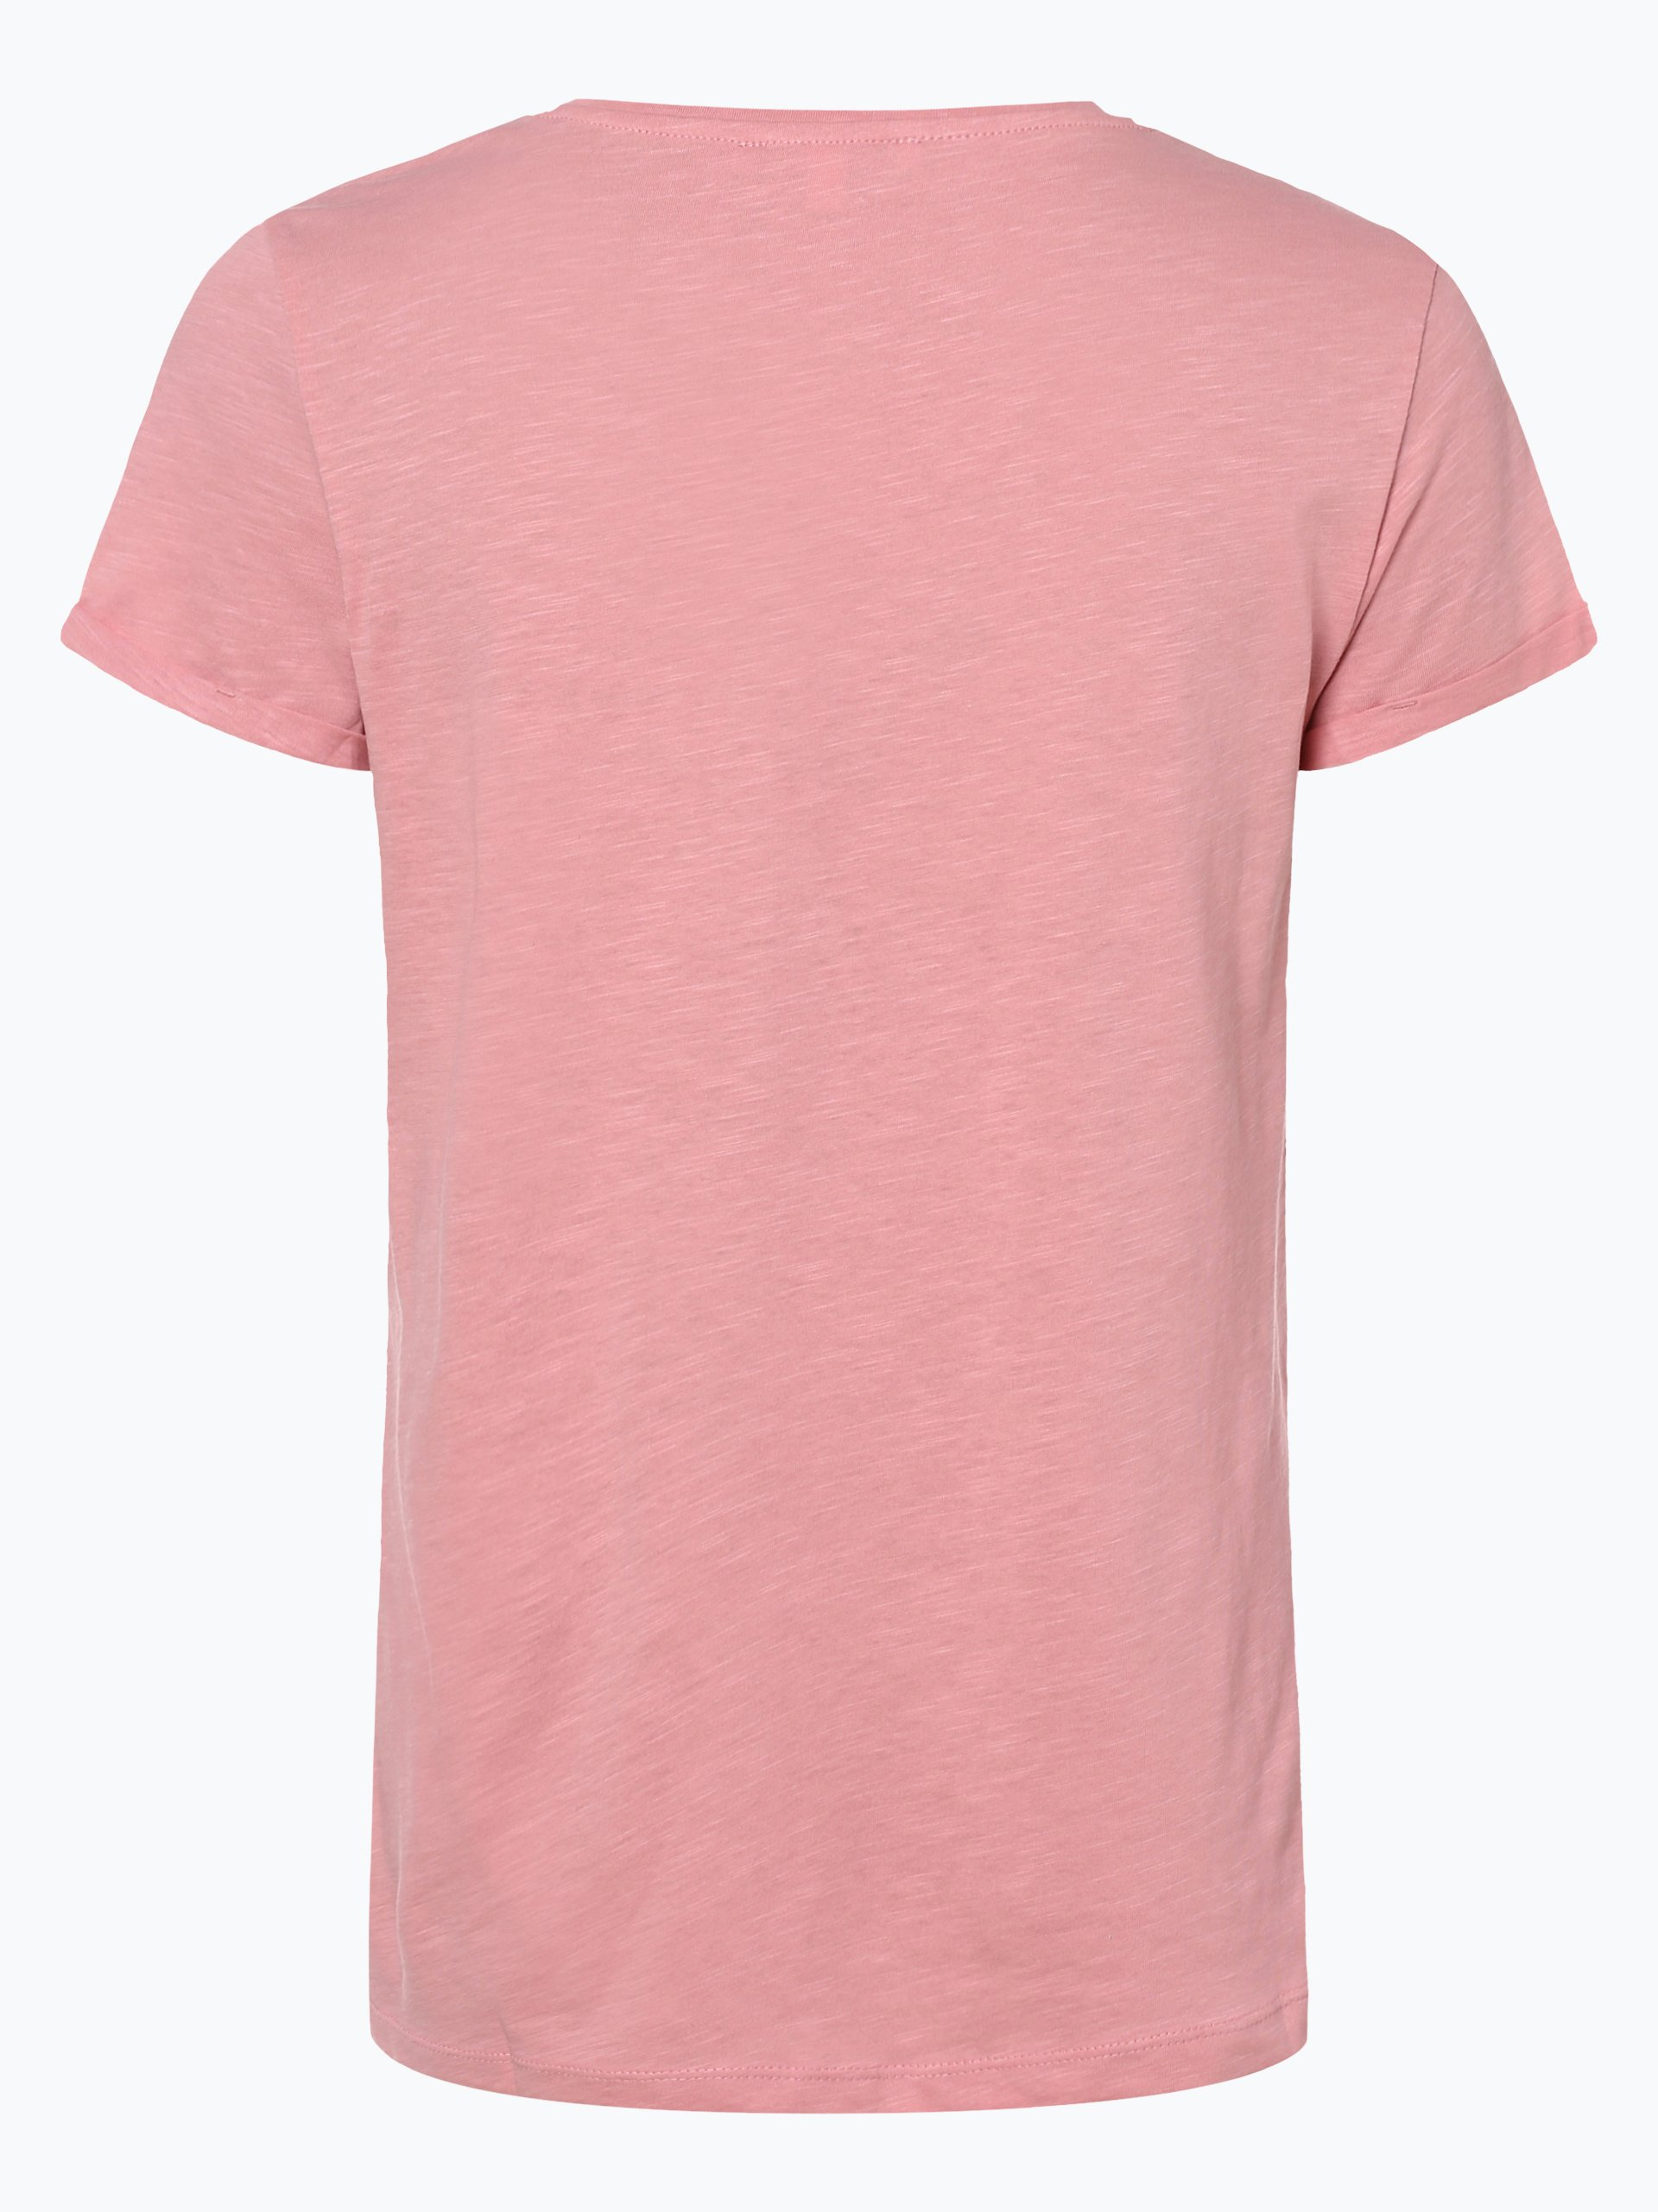 Tom Tailor Denim T-shirt damski